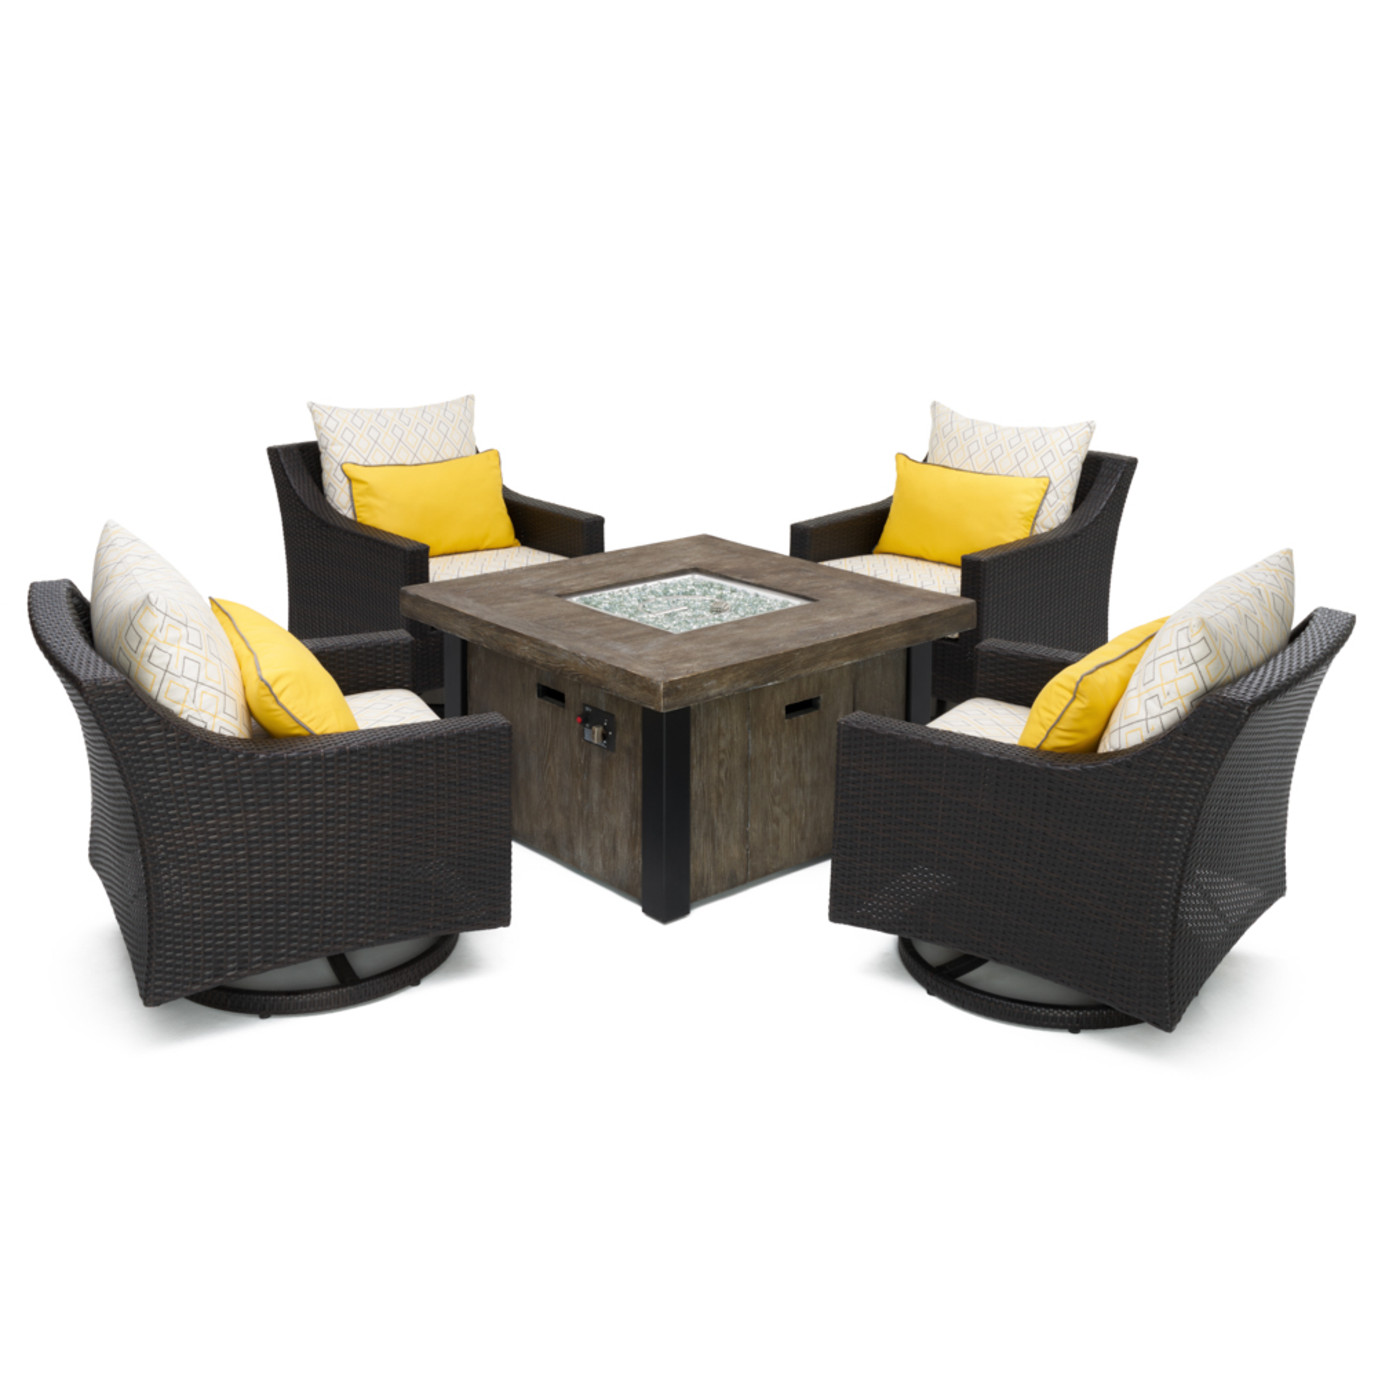 Deco™ Deluxe 5pc Motion Fire Chat Set - Sunflower Yellow